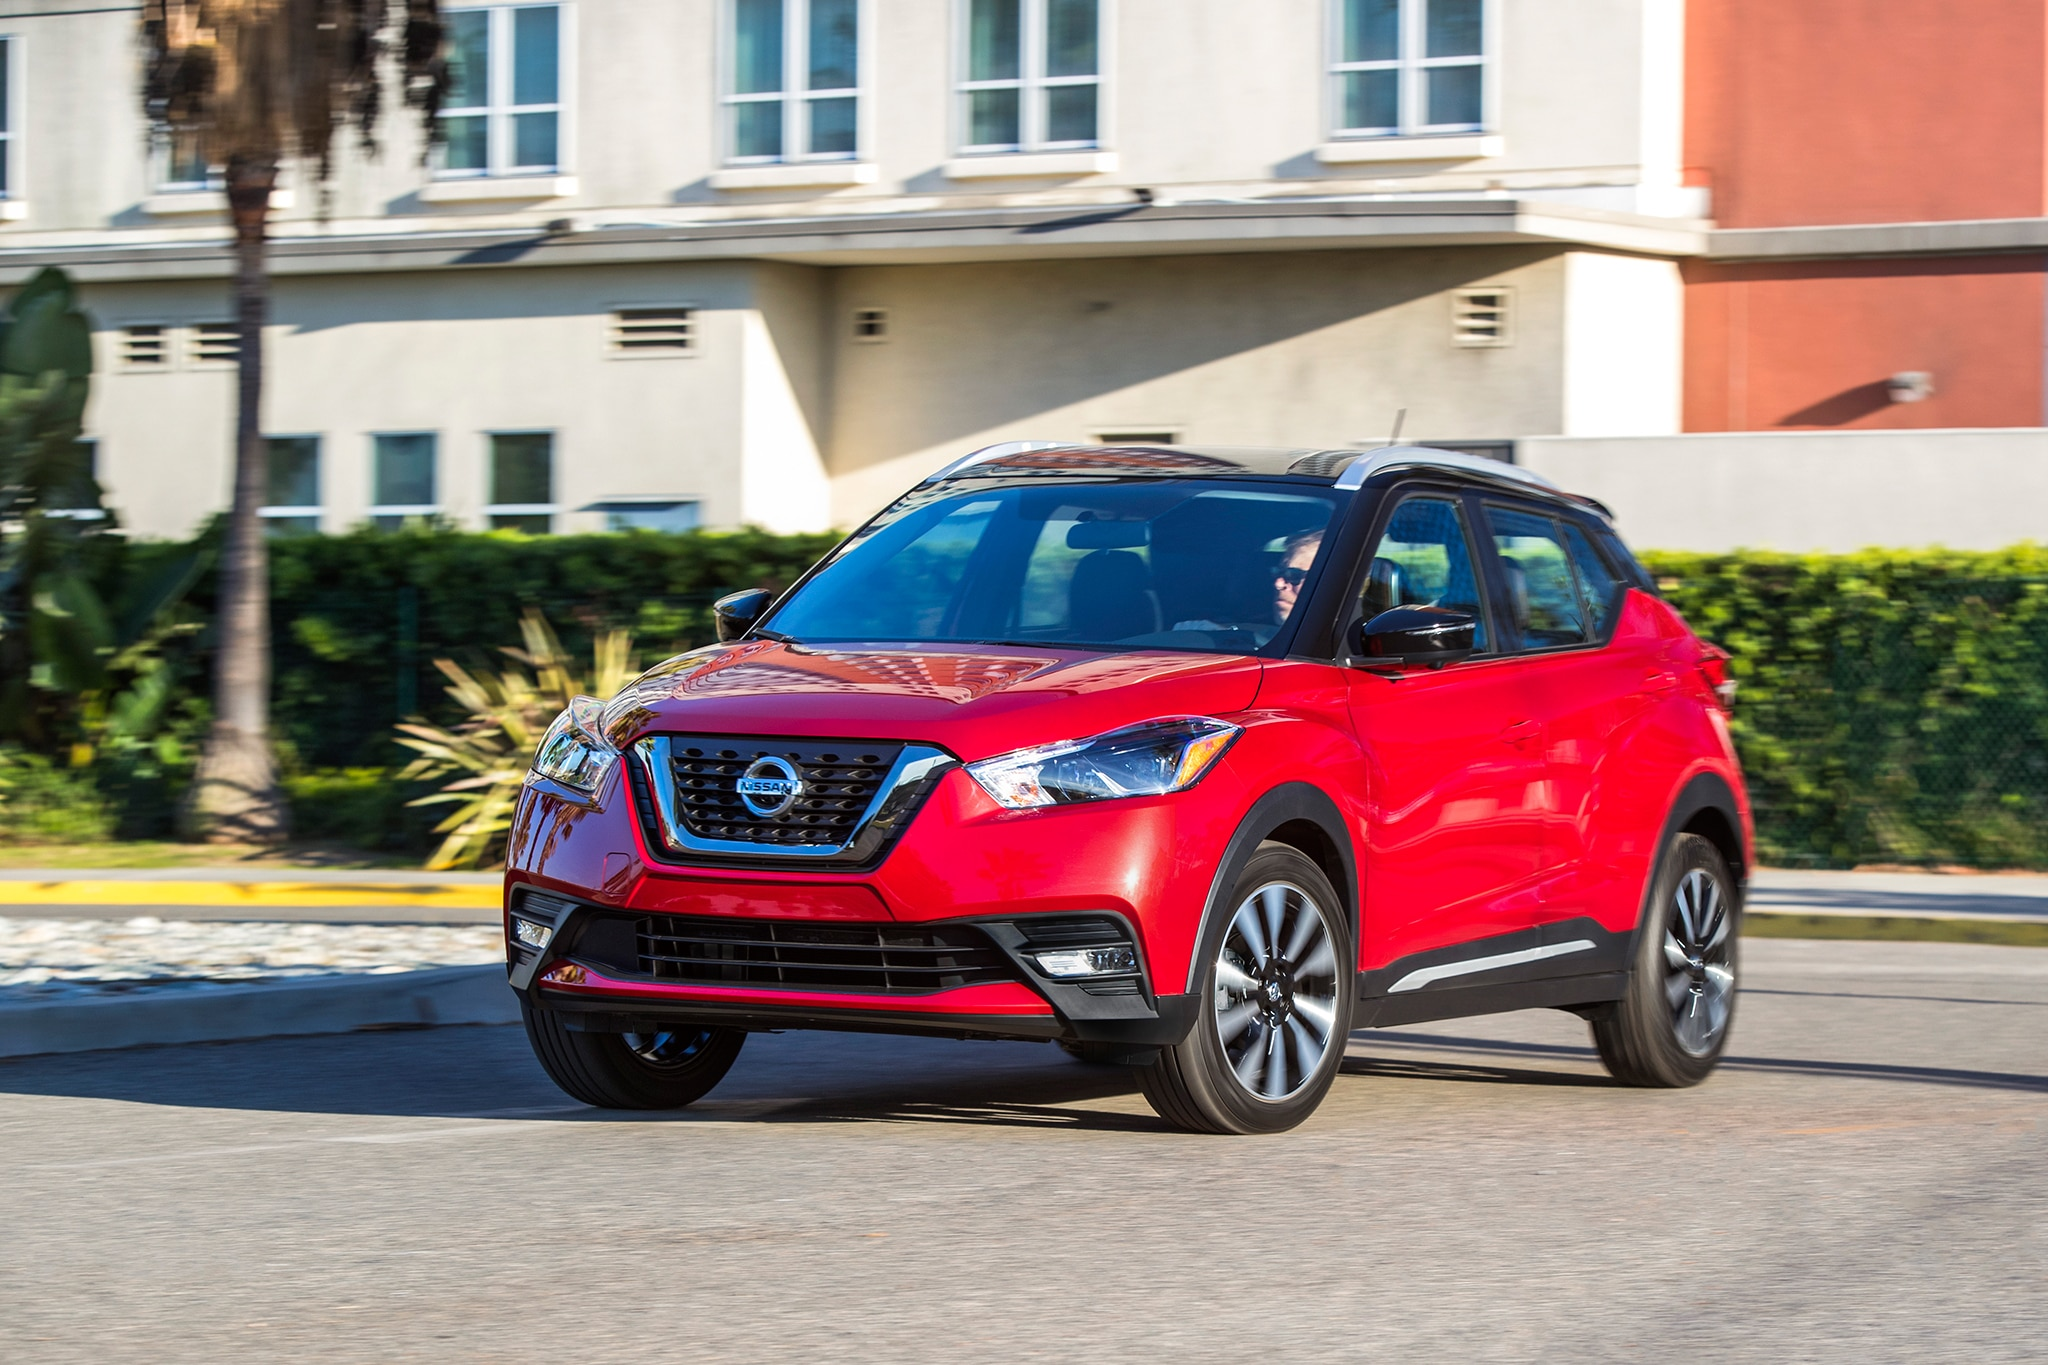 Get Your 2018 Nissan Kicks for Route 66